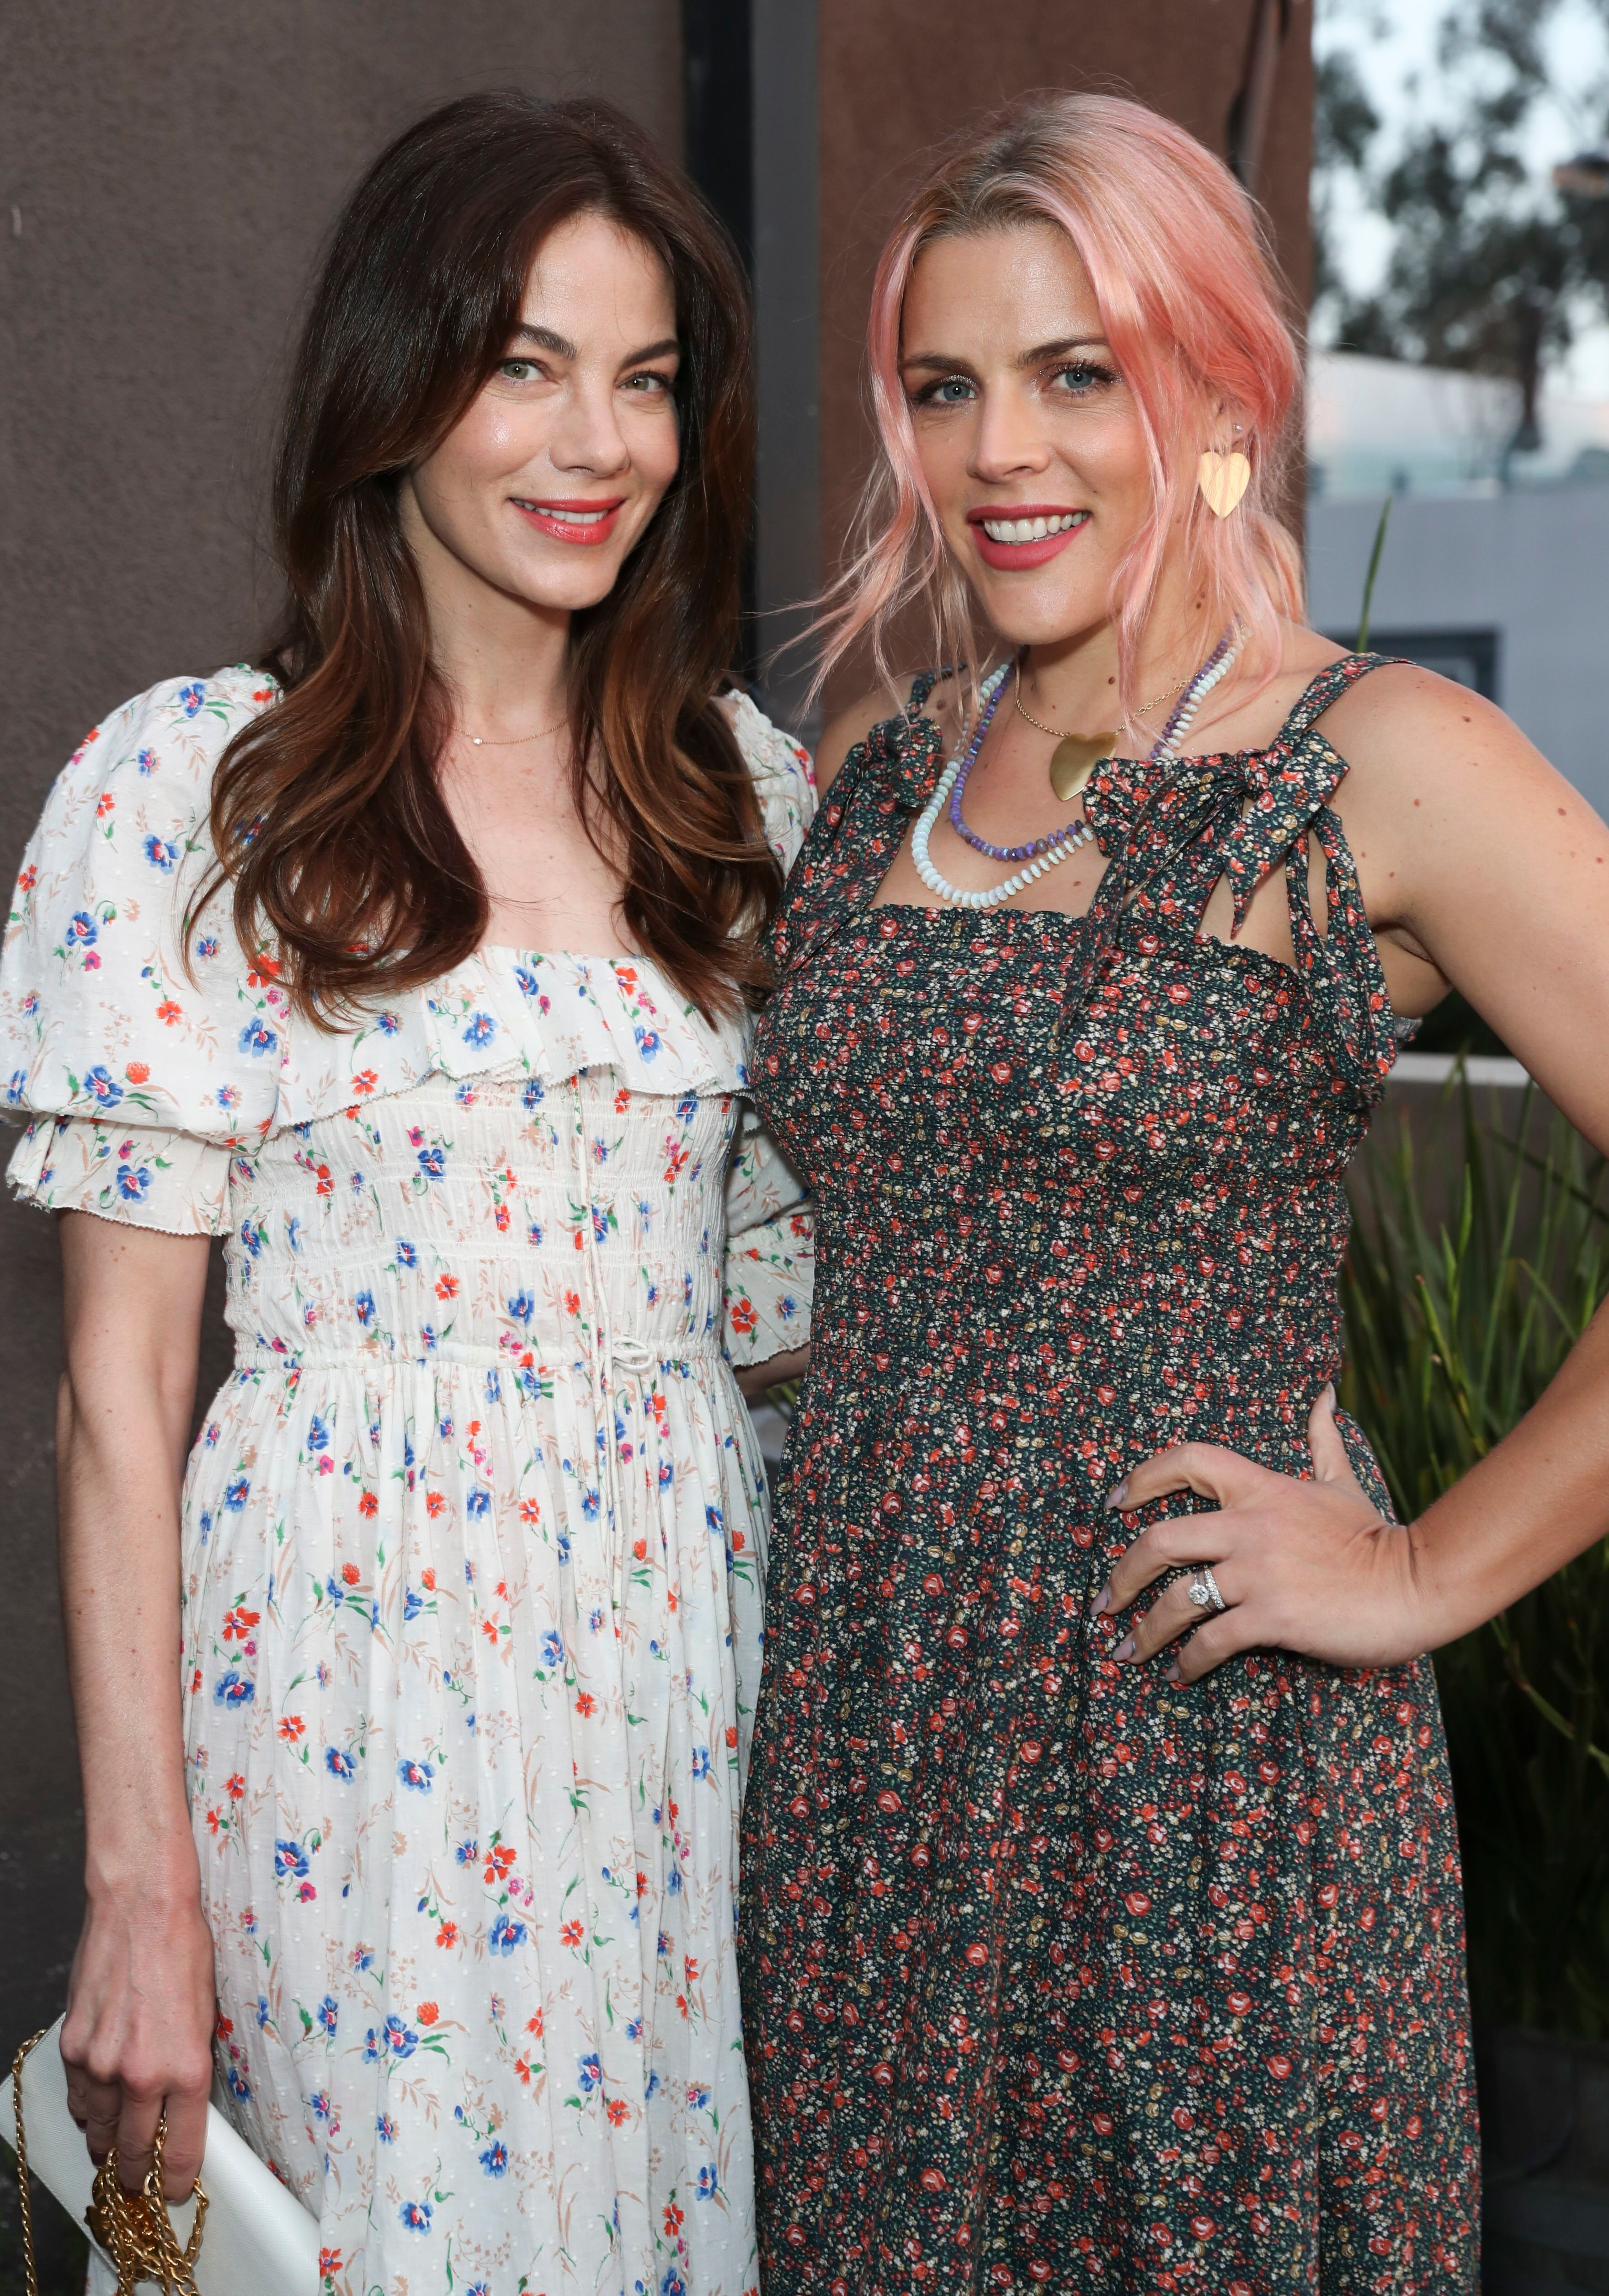 Michelle Monaghan and Busy PhilippsNET-A-PORTER Doen Dinner, Gjelina, Los Angeles, USA - 29 Apr 2019